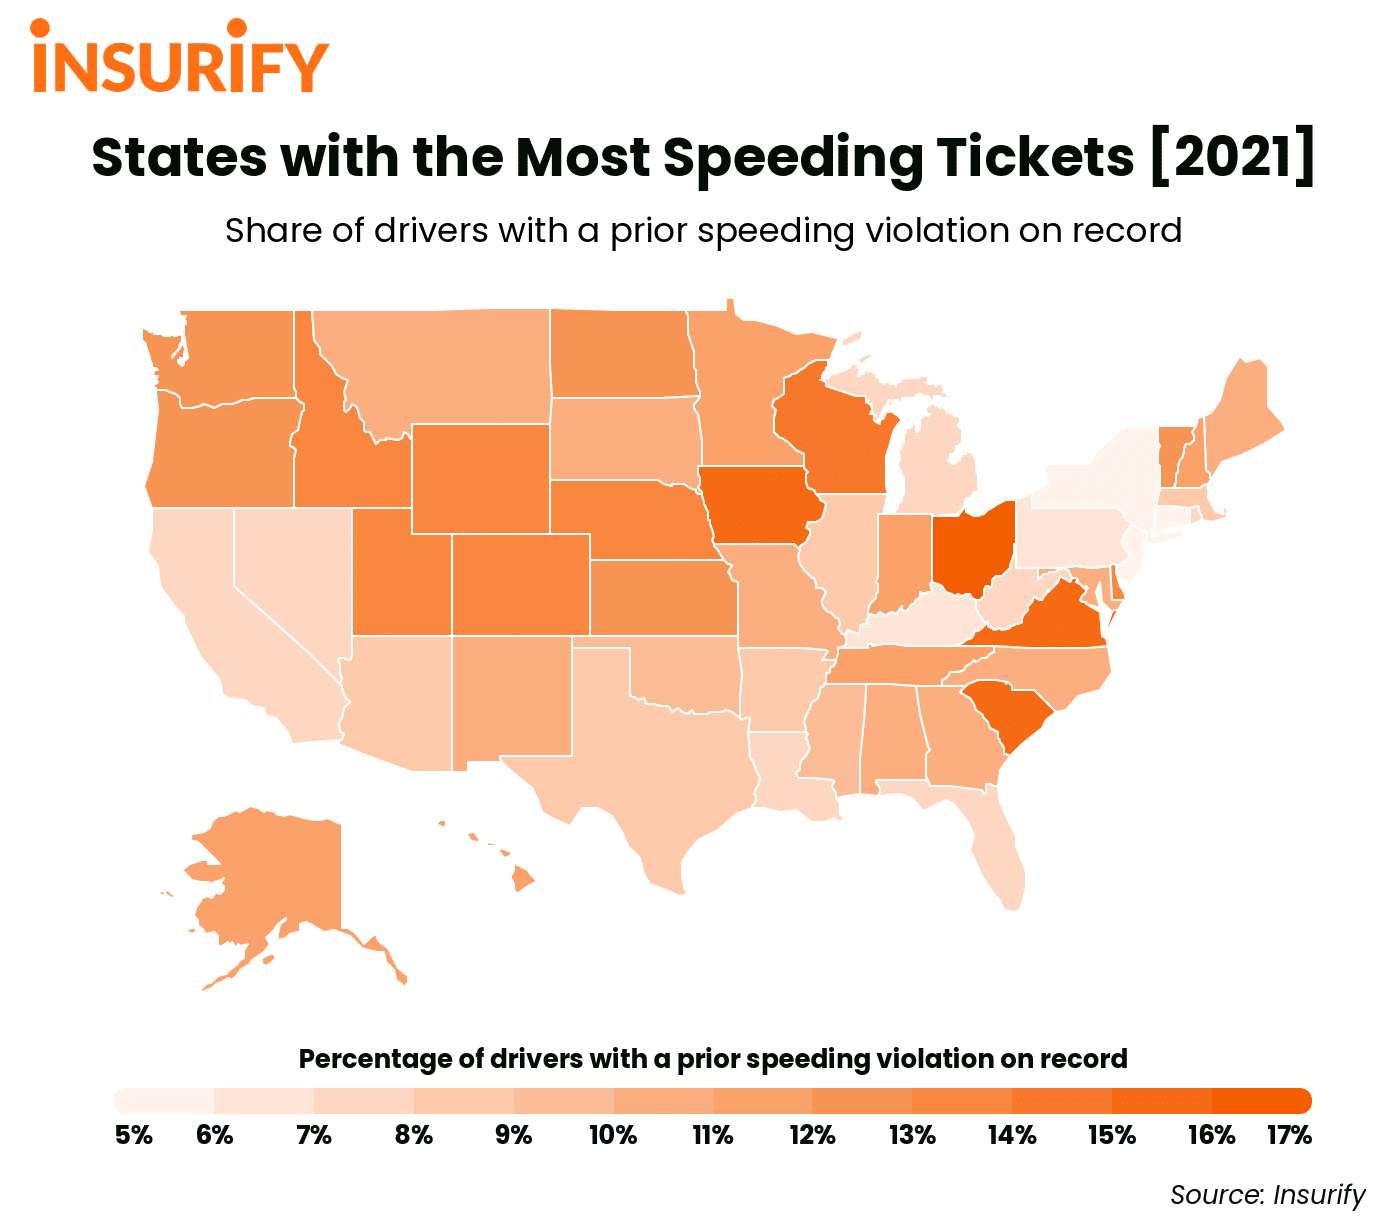 A heat map showing speeding violation rates by state in 2021.